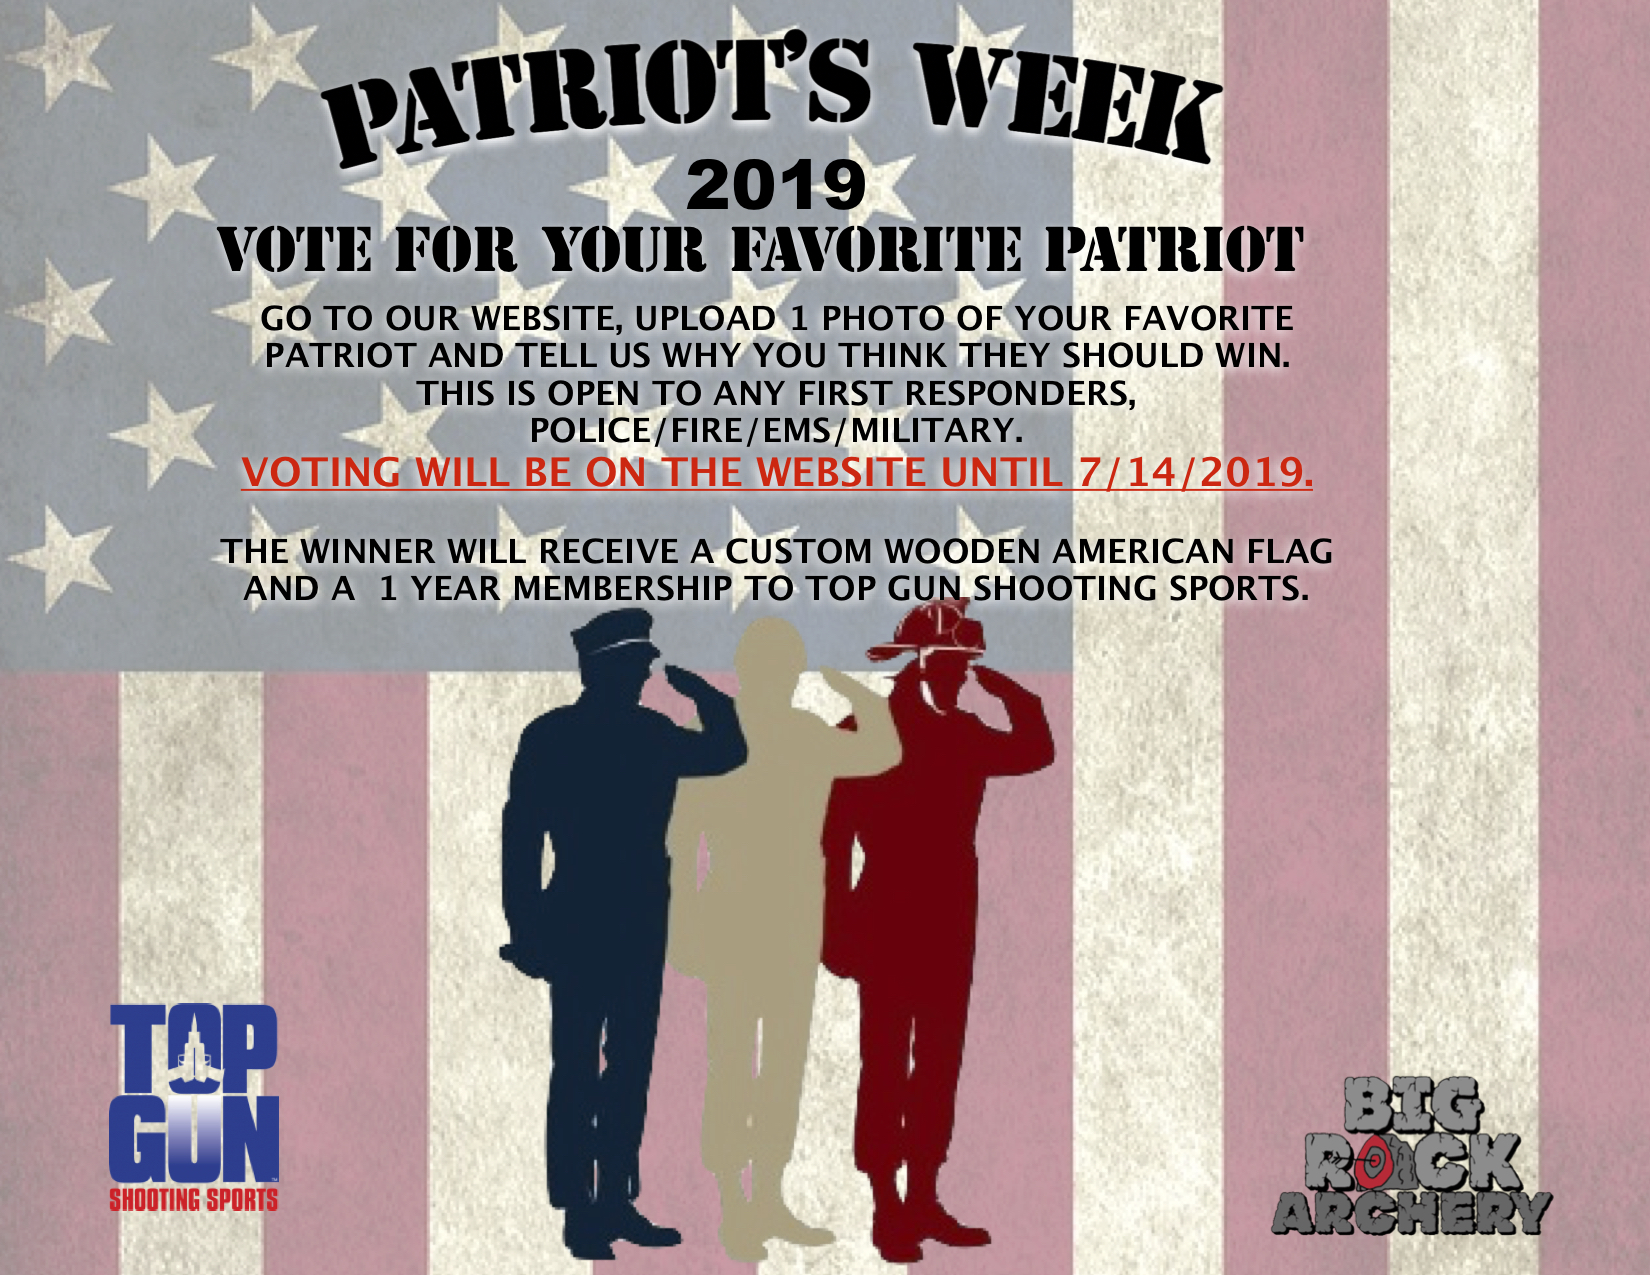 Vote for your Favorite Patriot